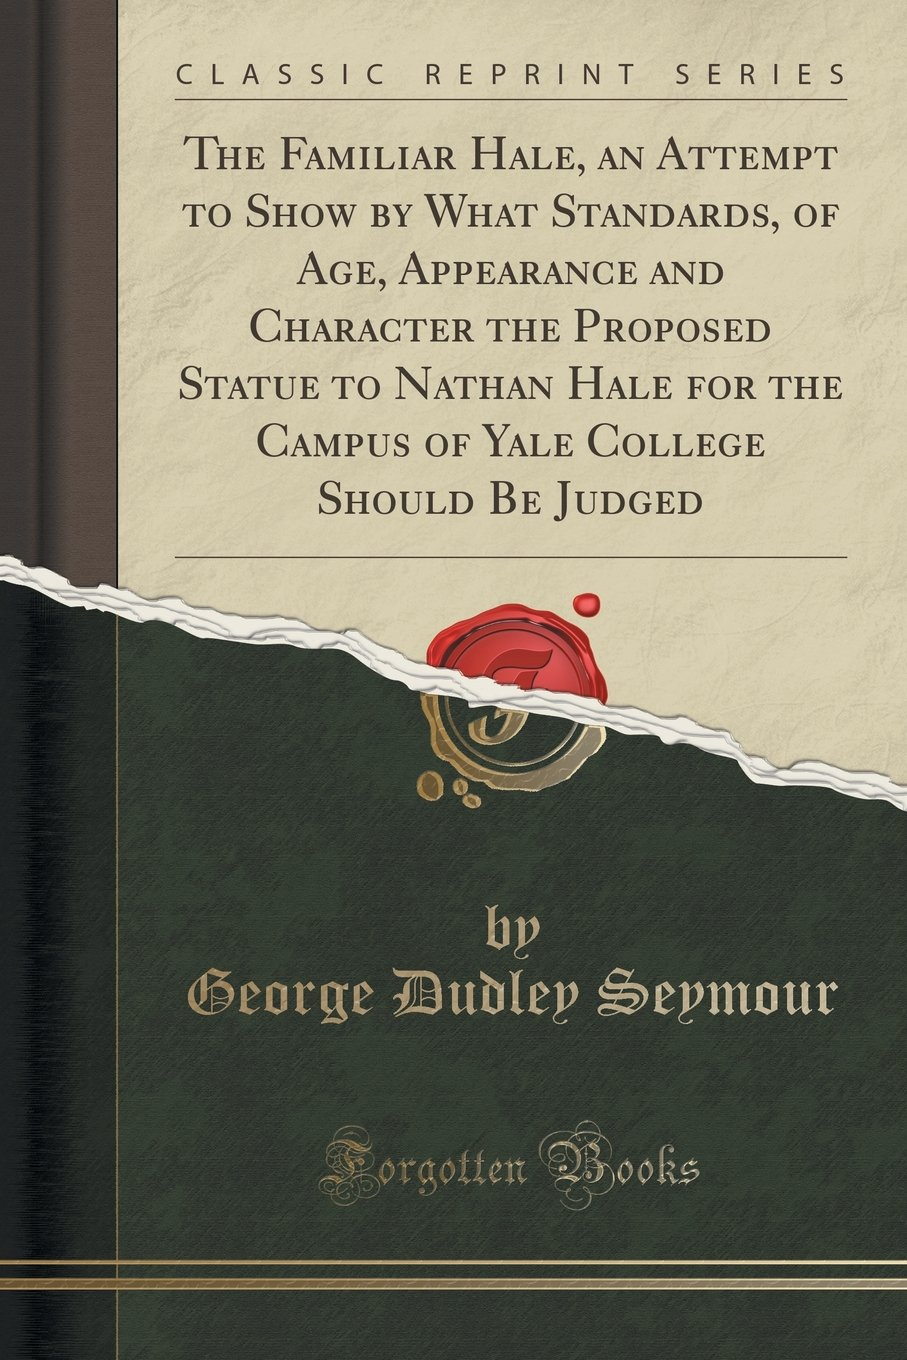 Download The Familiar Hale, an Attempt to Show by What Standards, of Age, Appearance and Character the Proposed Statue to Nathan Hale for the Campus of Yale College Should Be Judged (Classic Reprint) PDF